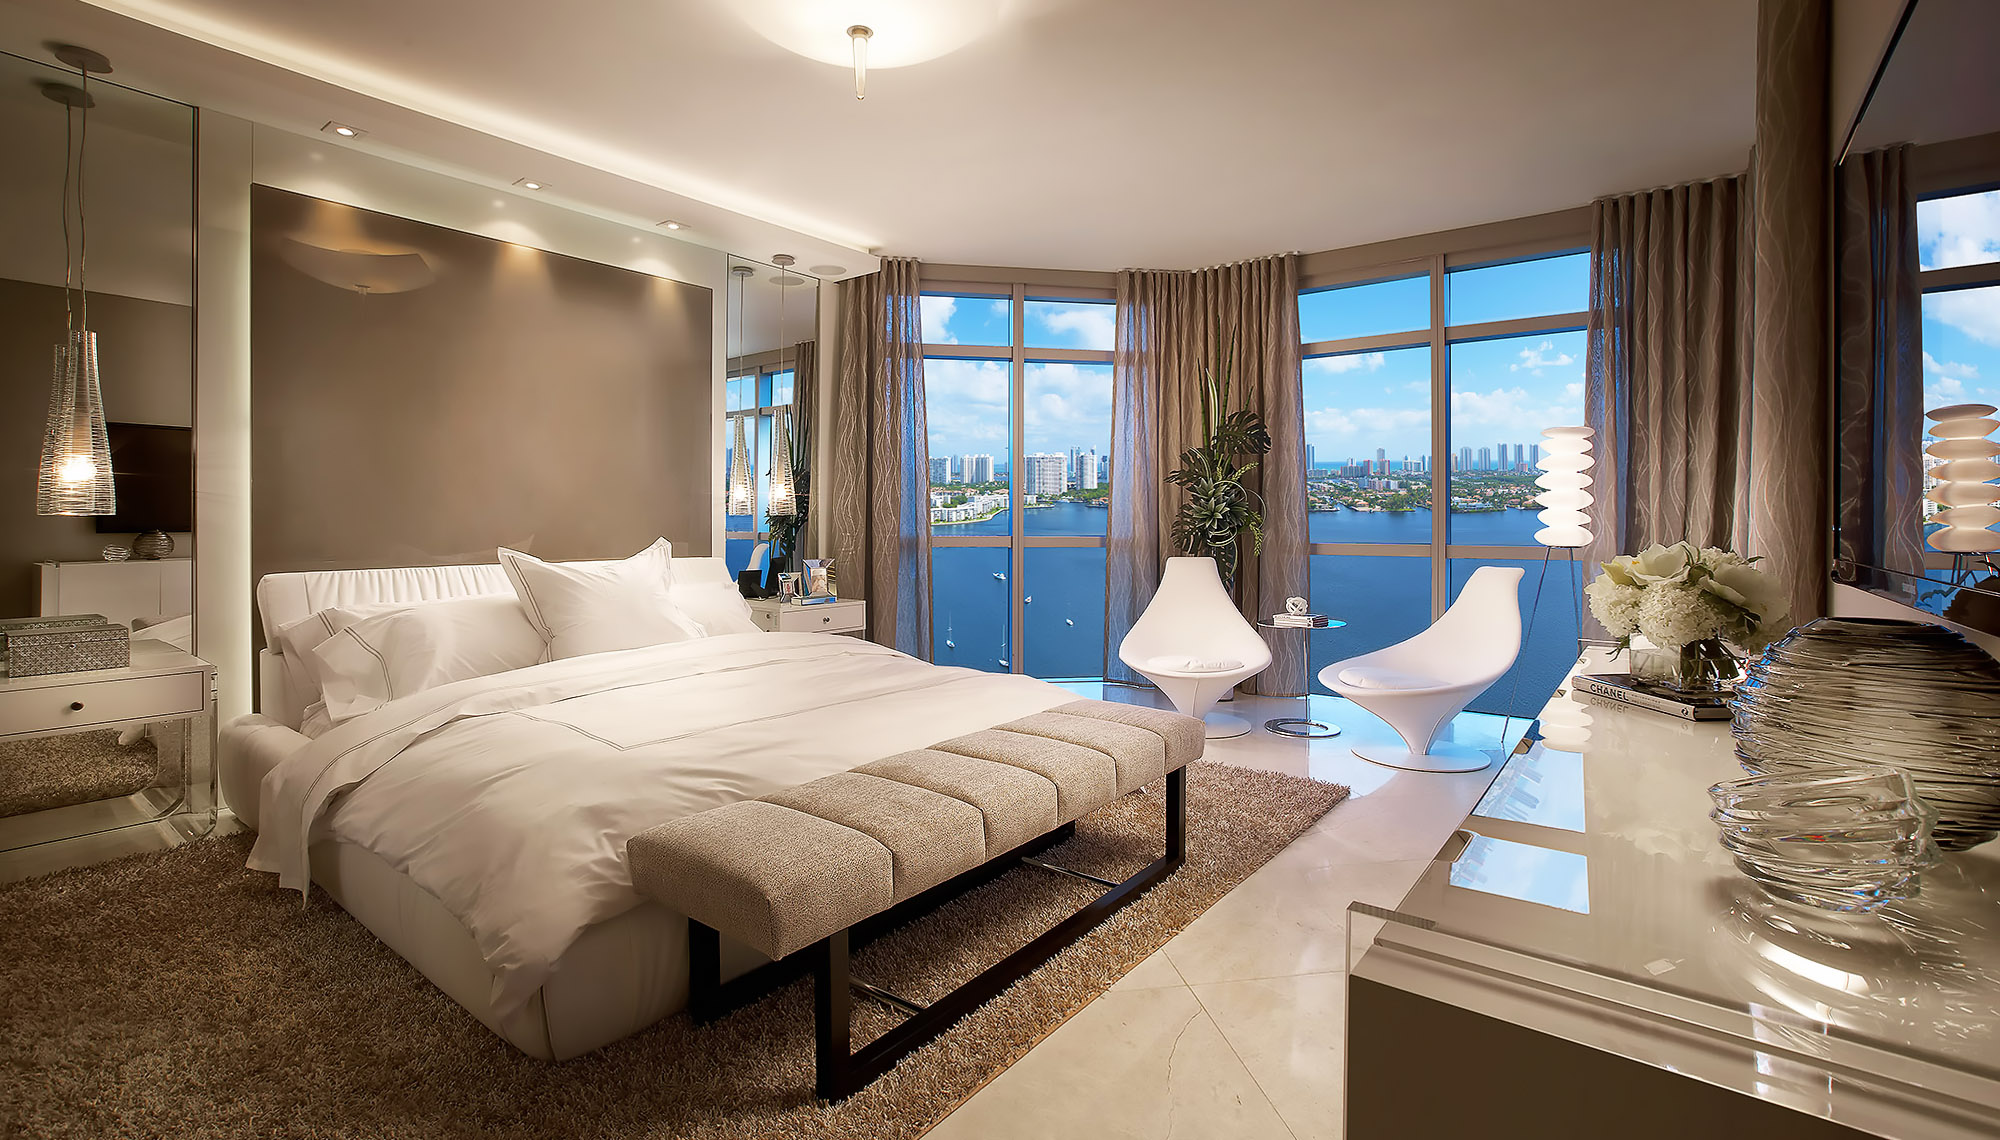 Luxury-Real-Estate-Photography-Bedroom-Marina-Palms